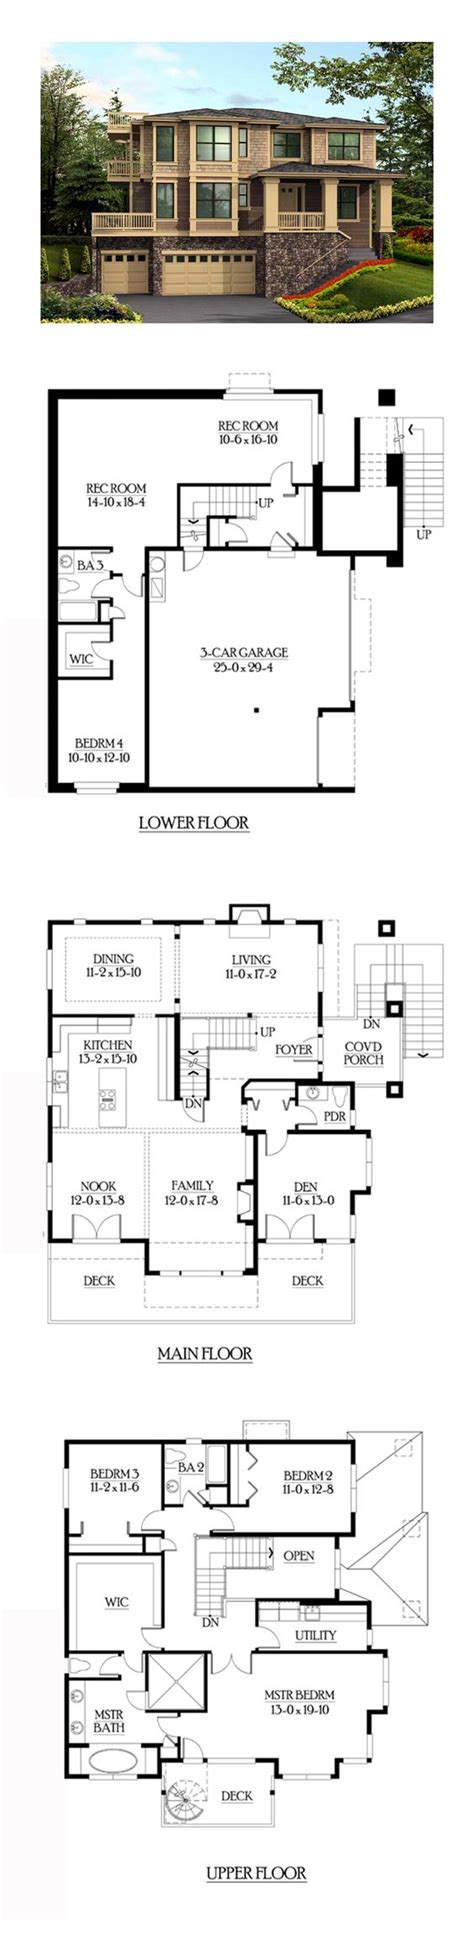 house plans with finished basements cool house plans cool houses and finished basements on